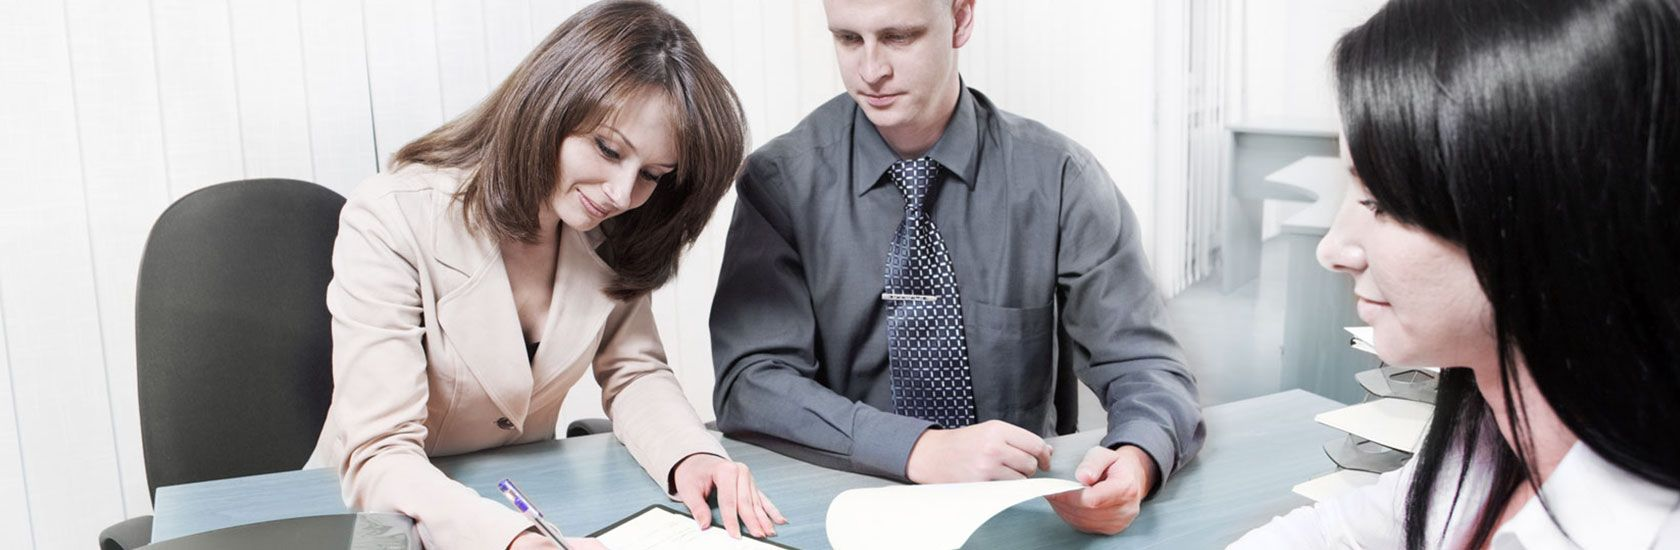 Couple client with female lawyer signing paper